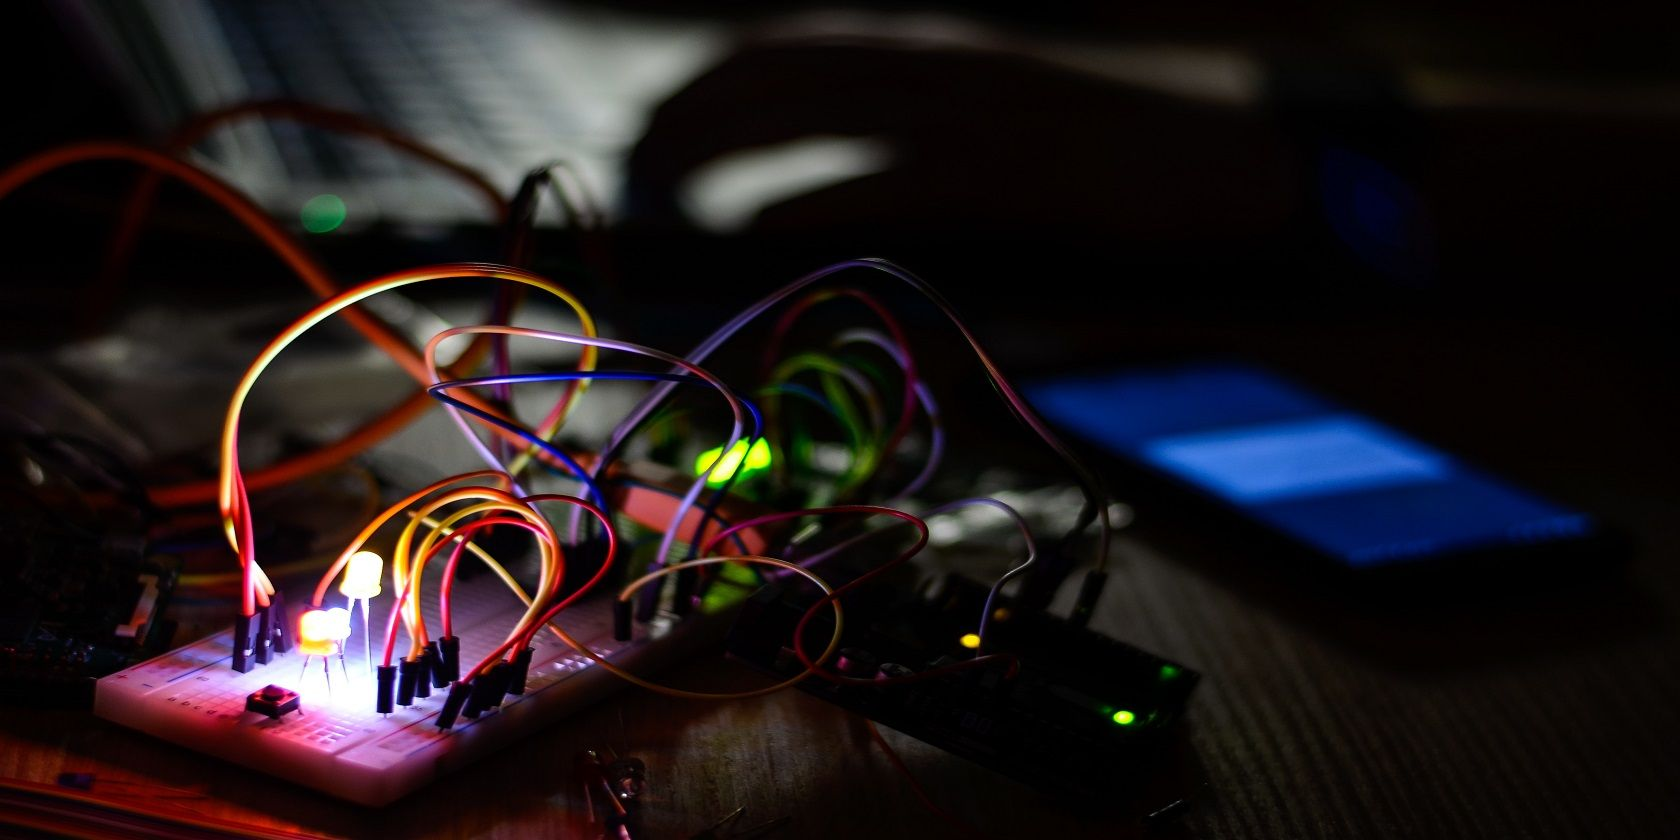 DIY Tech Ideas for Students: 10 Interesting Makerspace Projects